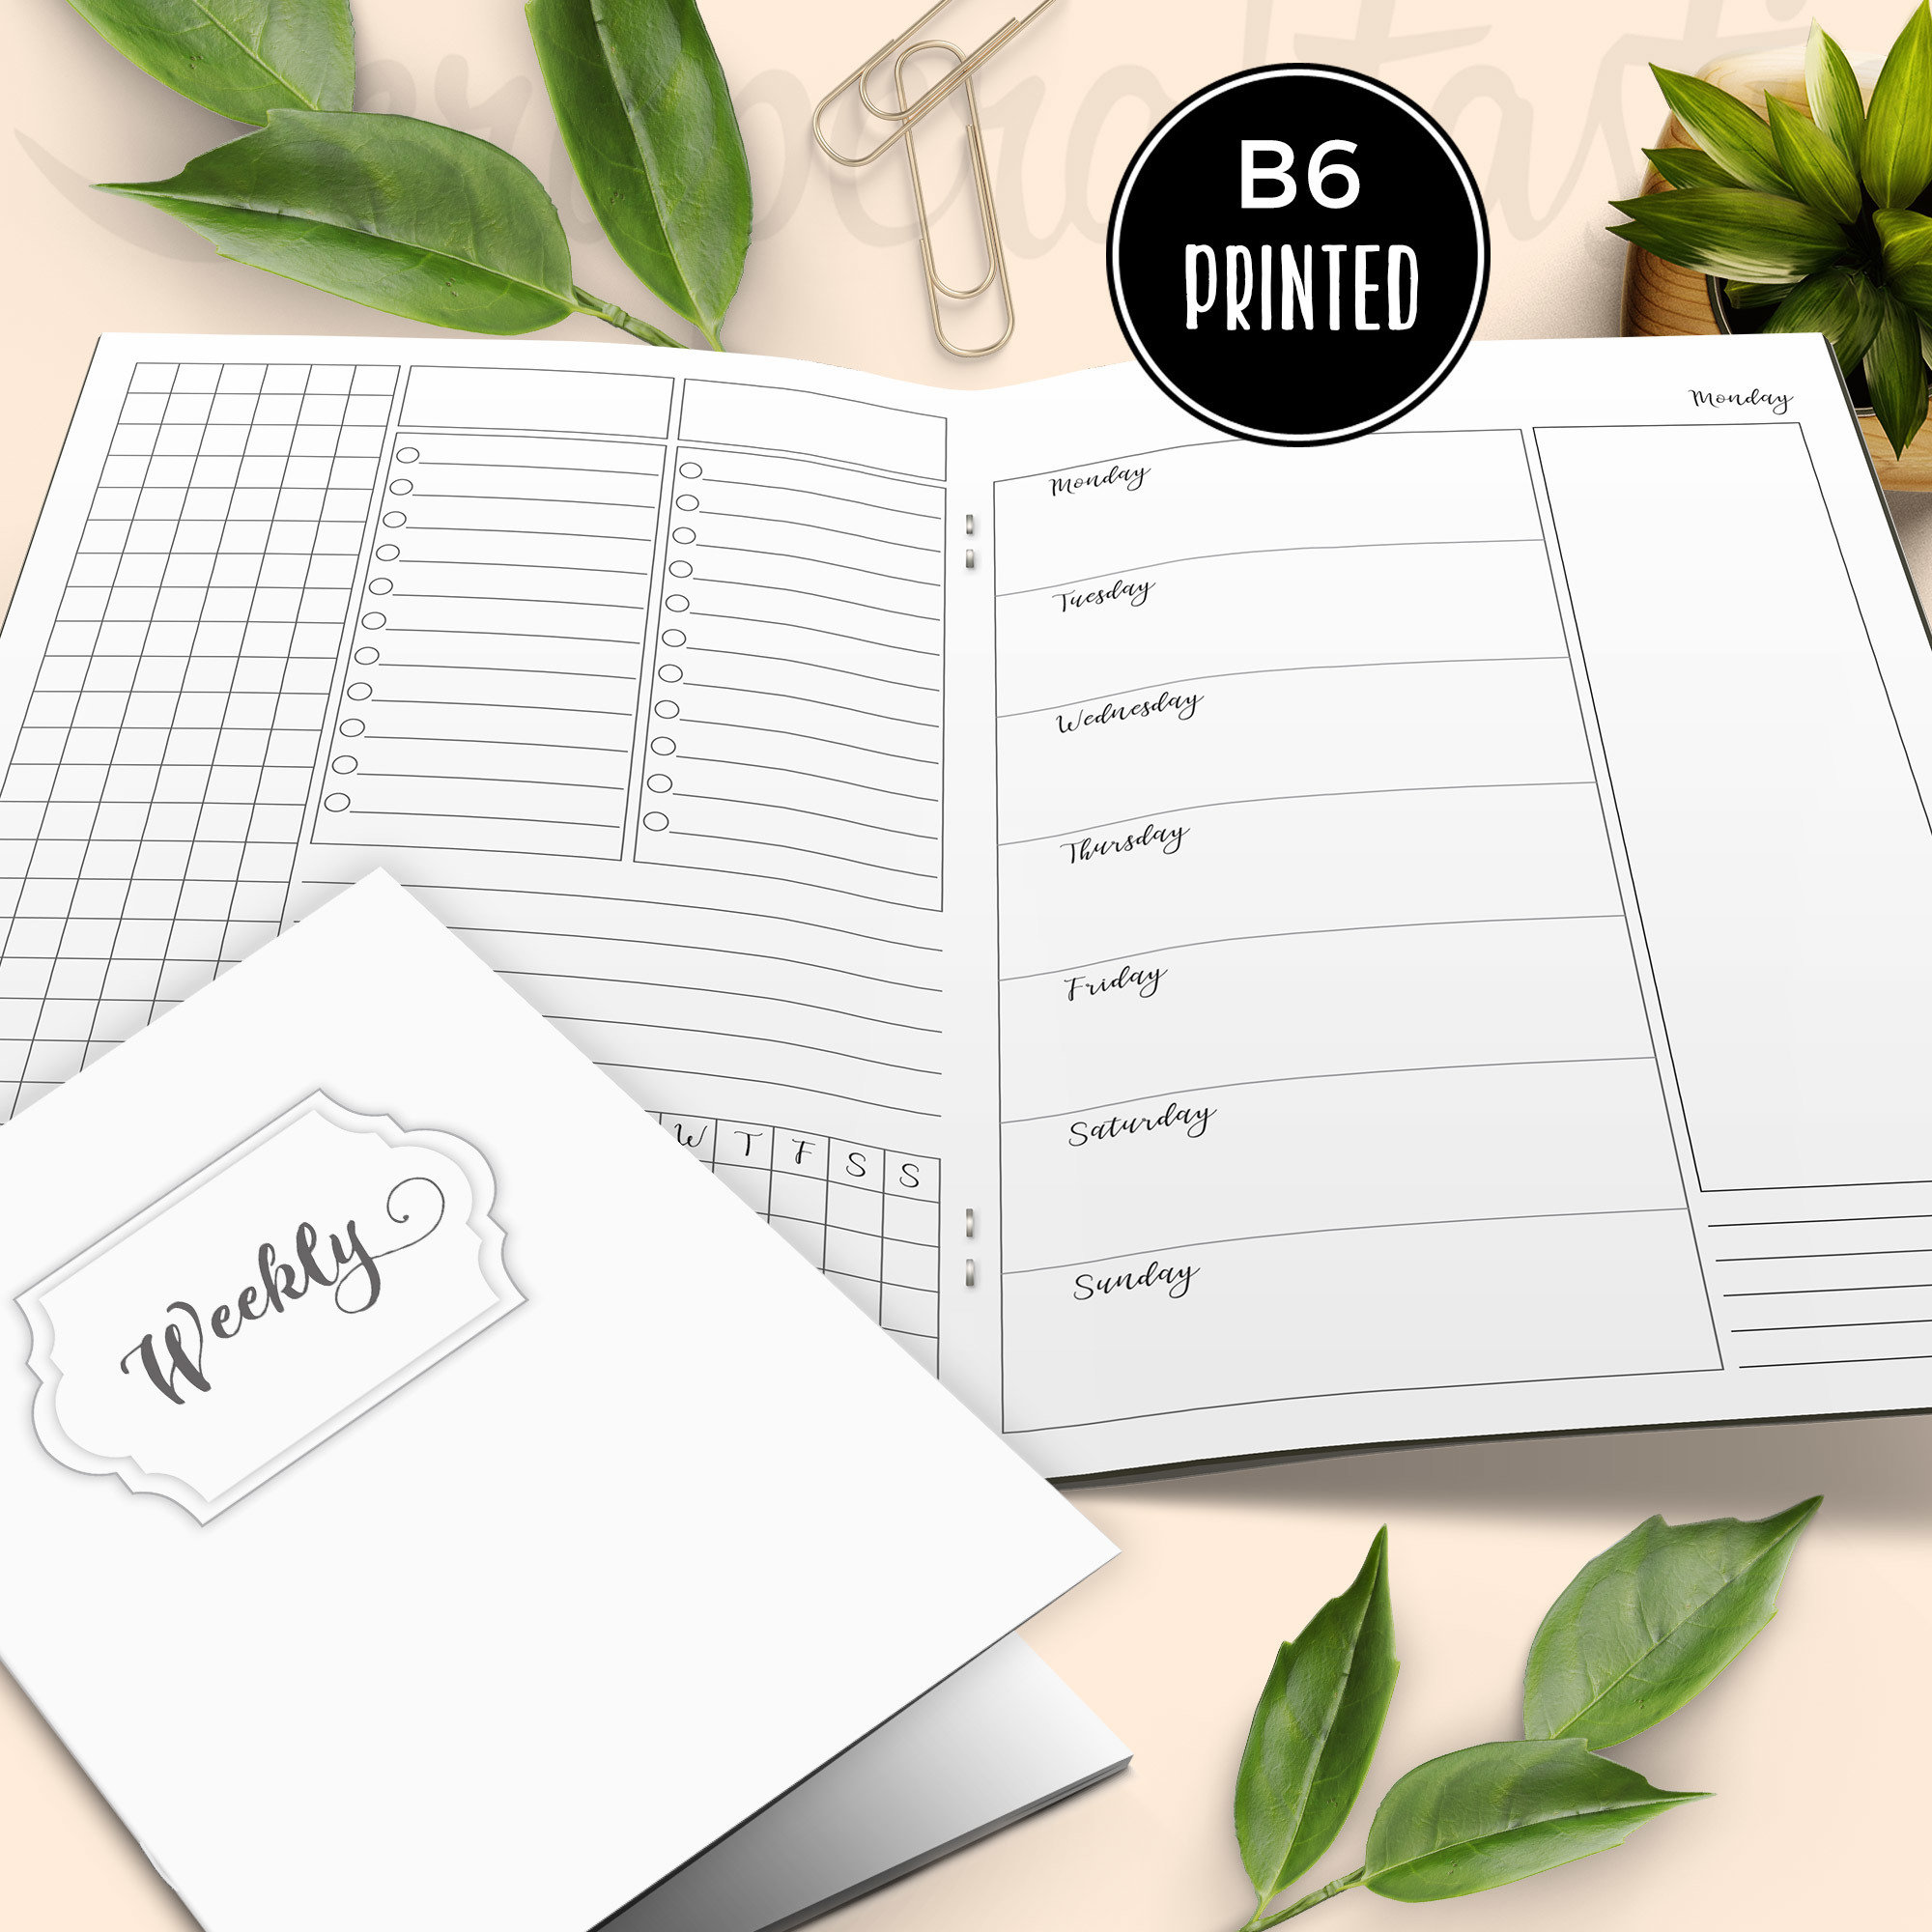 Deluxe Horizontal Vertical Week on Four Pages (WO4P) B6 Traveler's Notebook Printable Inserts {PRINTED} 50029P